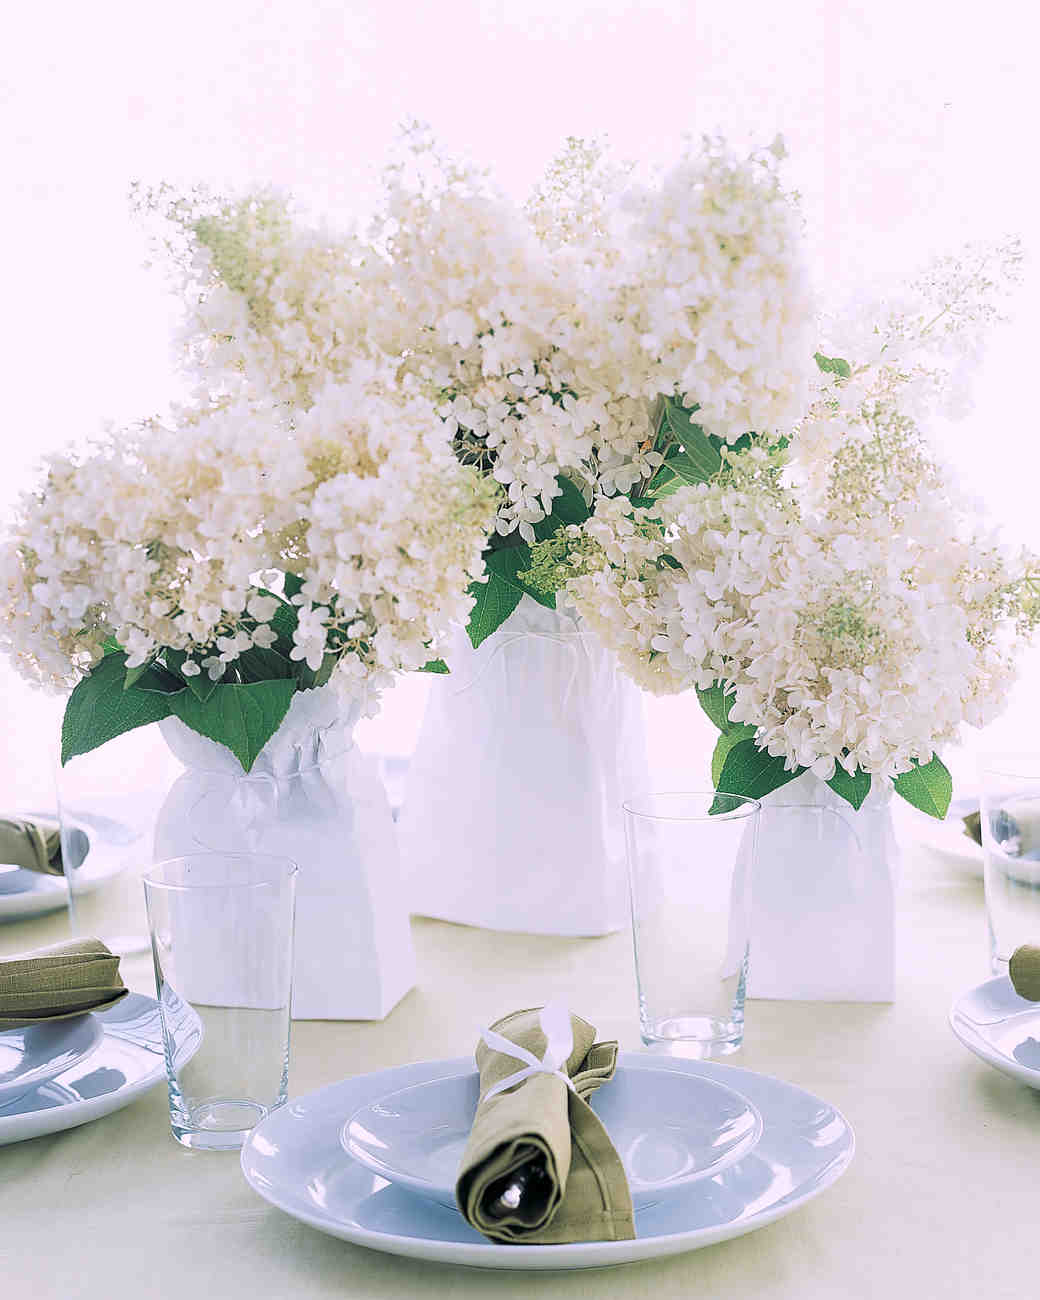 Wedding Flower Center Pieces: Affordable Wedding Centerpieces That Don't Look Cheap